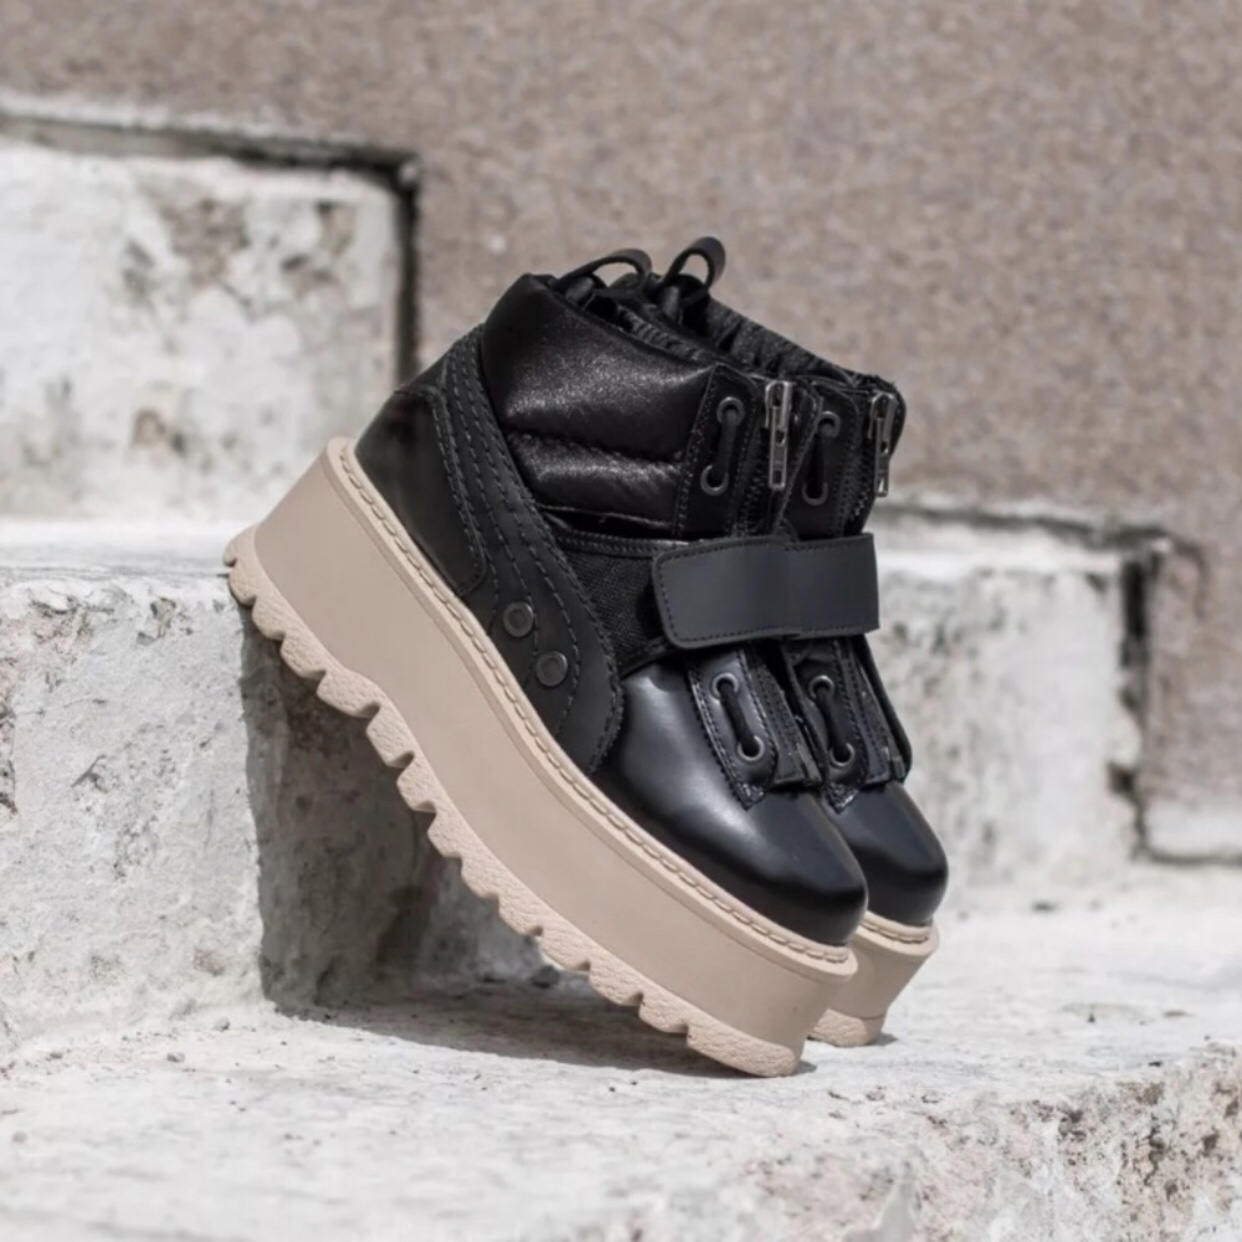 sports shoes 62941 188f6 Fenty X Puma by Rihanna Sneaker Boot Strap Platform ...